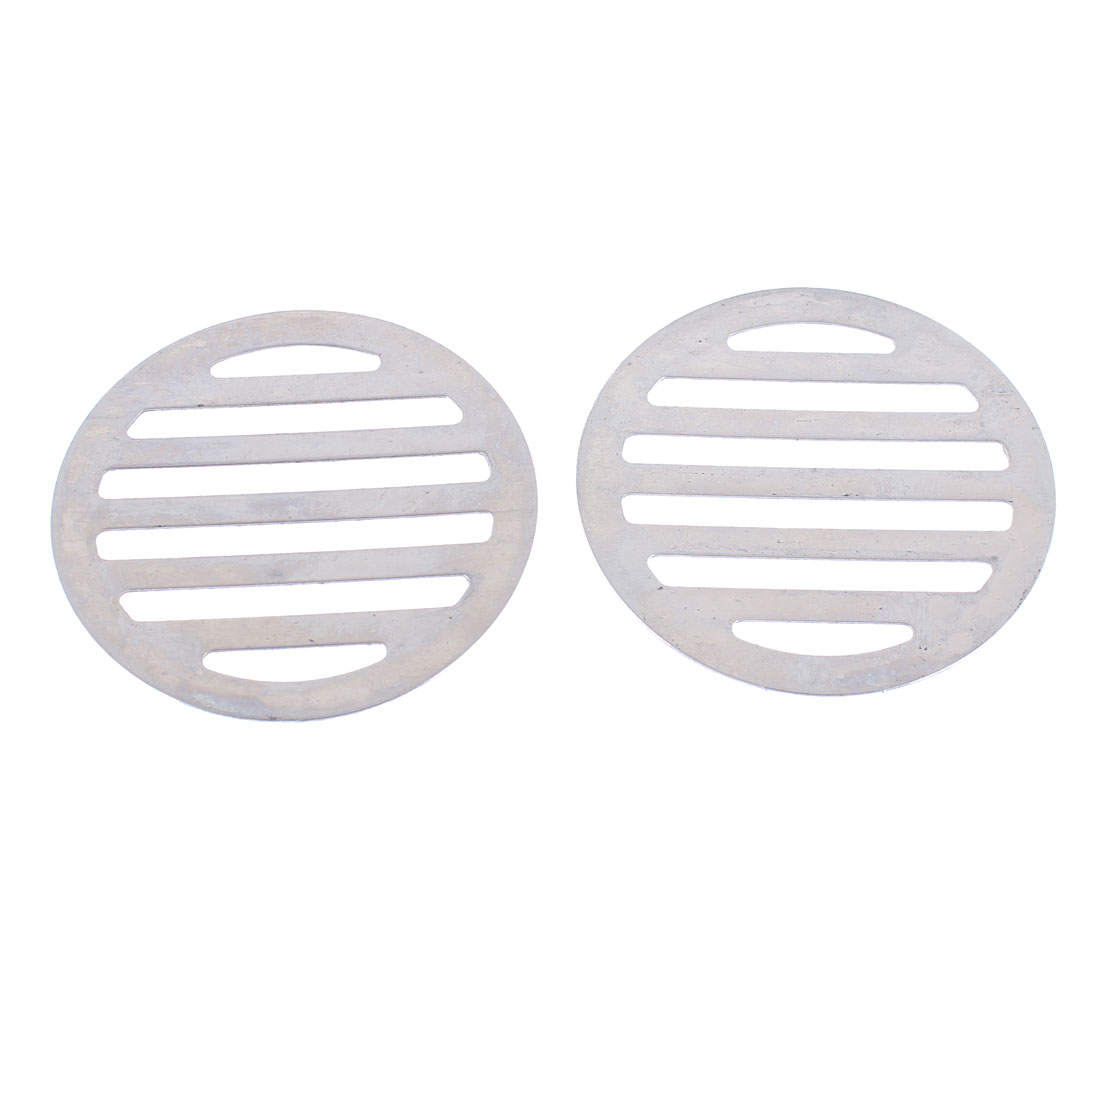 "Stainless Steel Kitchen Bathroom Round Floor Drain Cover 3"" 7.5cm 2Pcs"